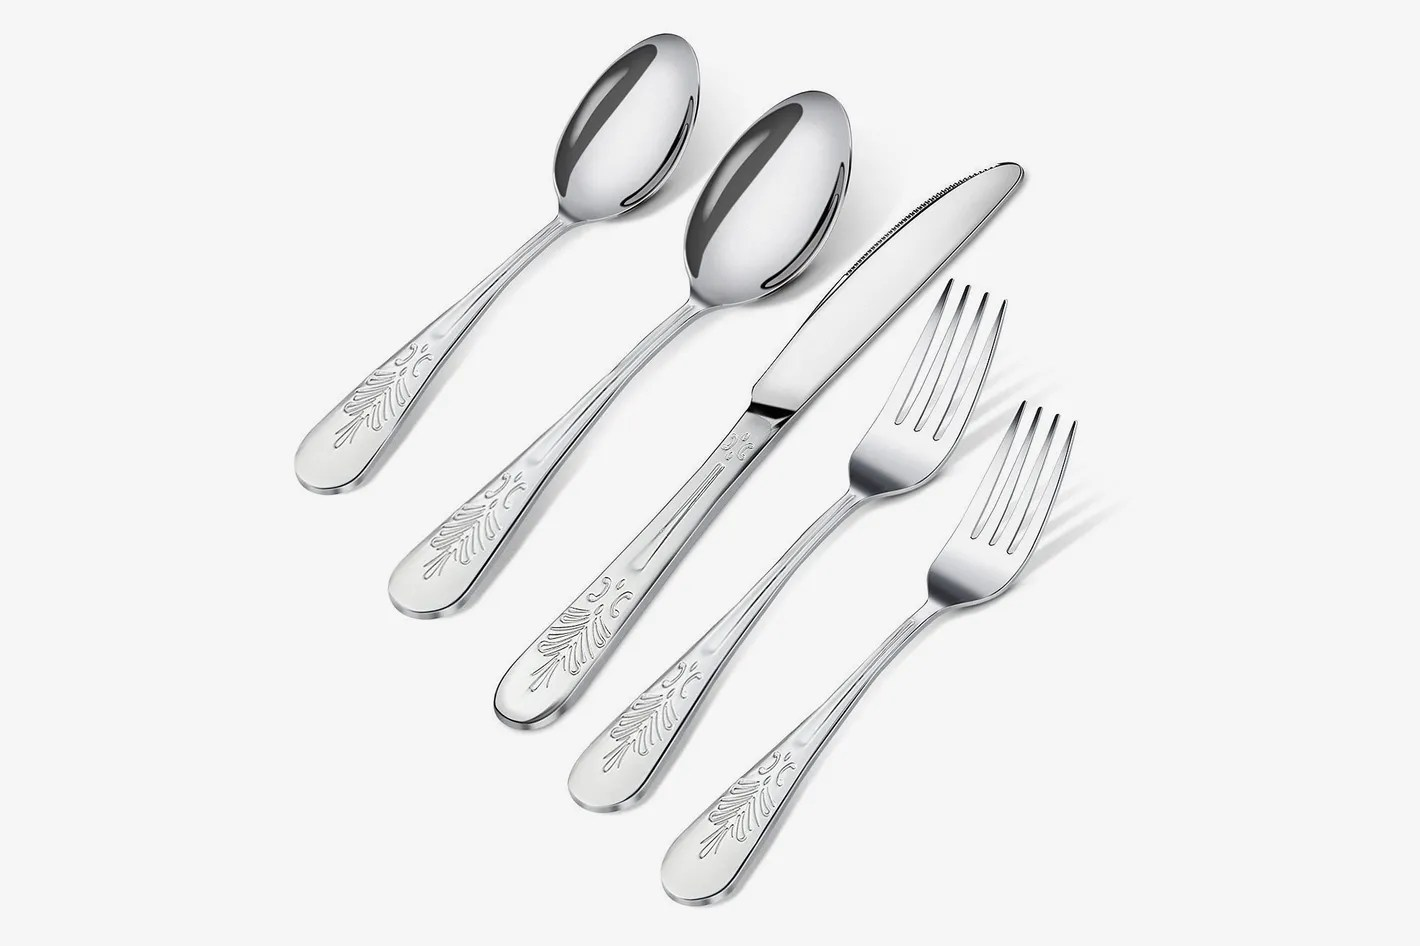 Best Deal On Silverware Best Stainless Flatware Sets Atcsagacity